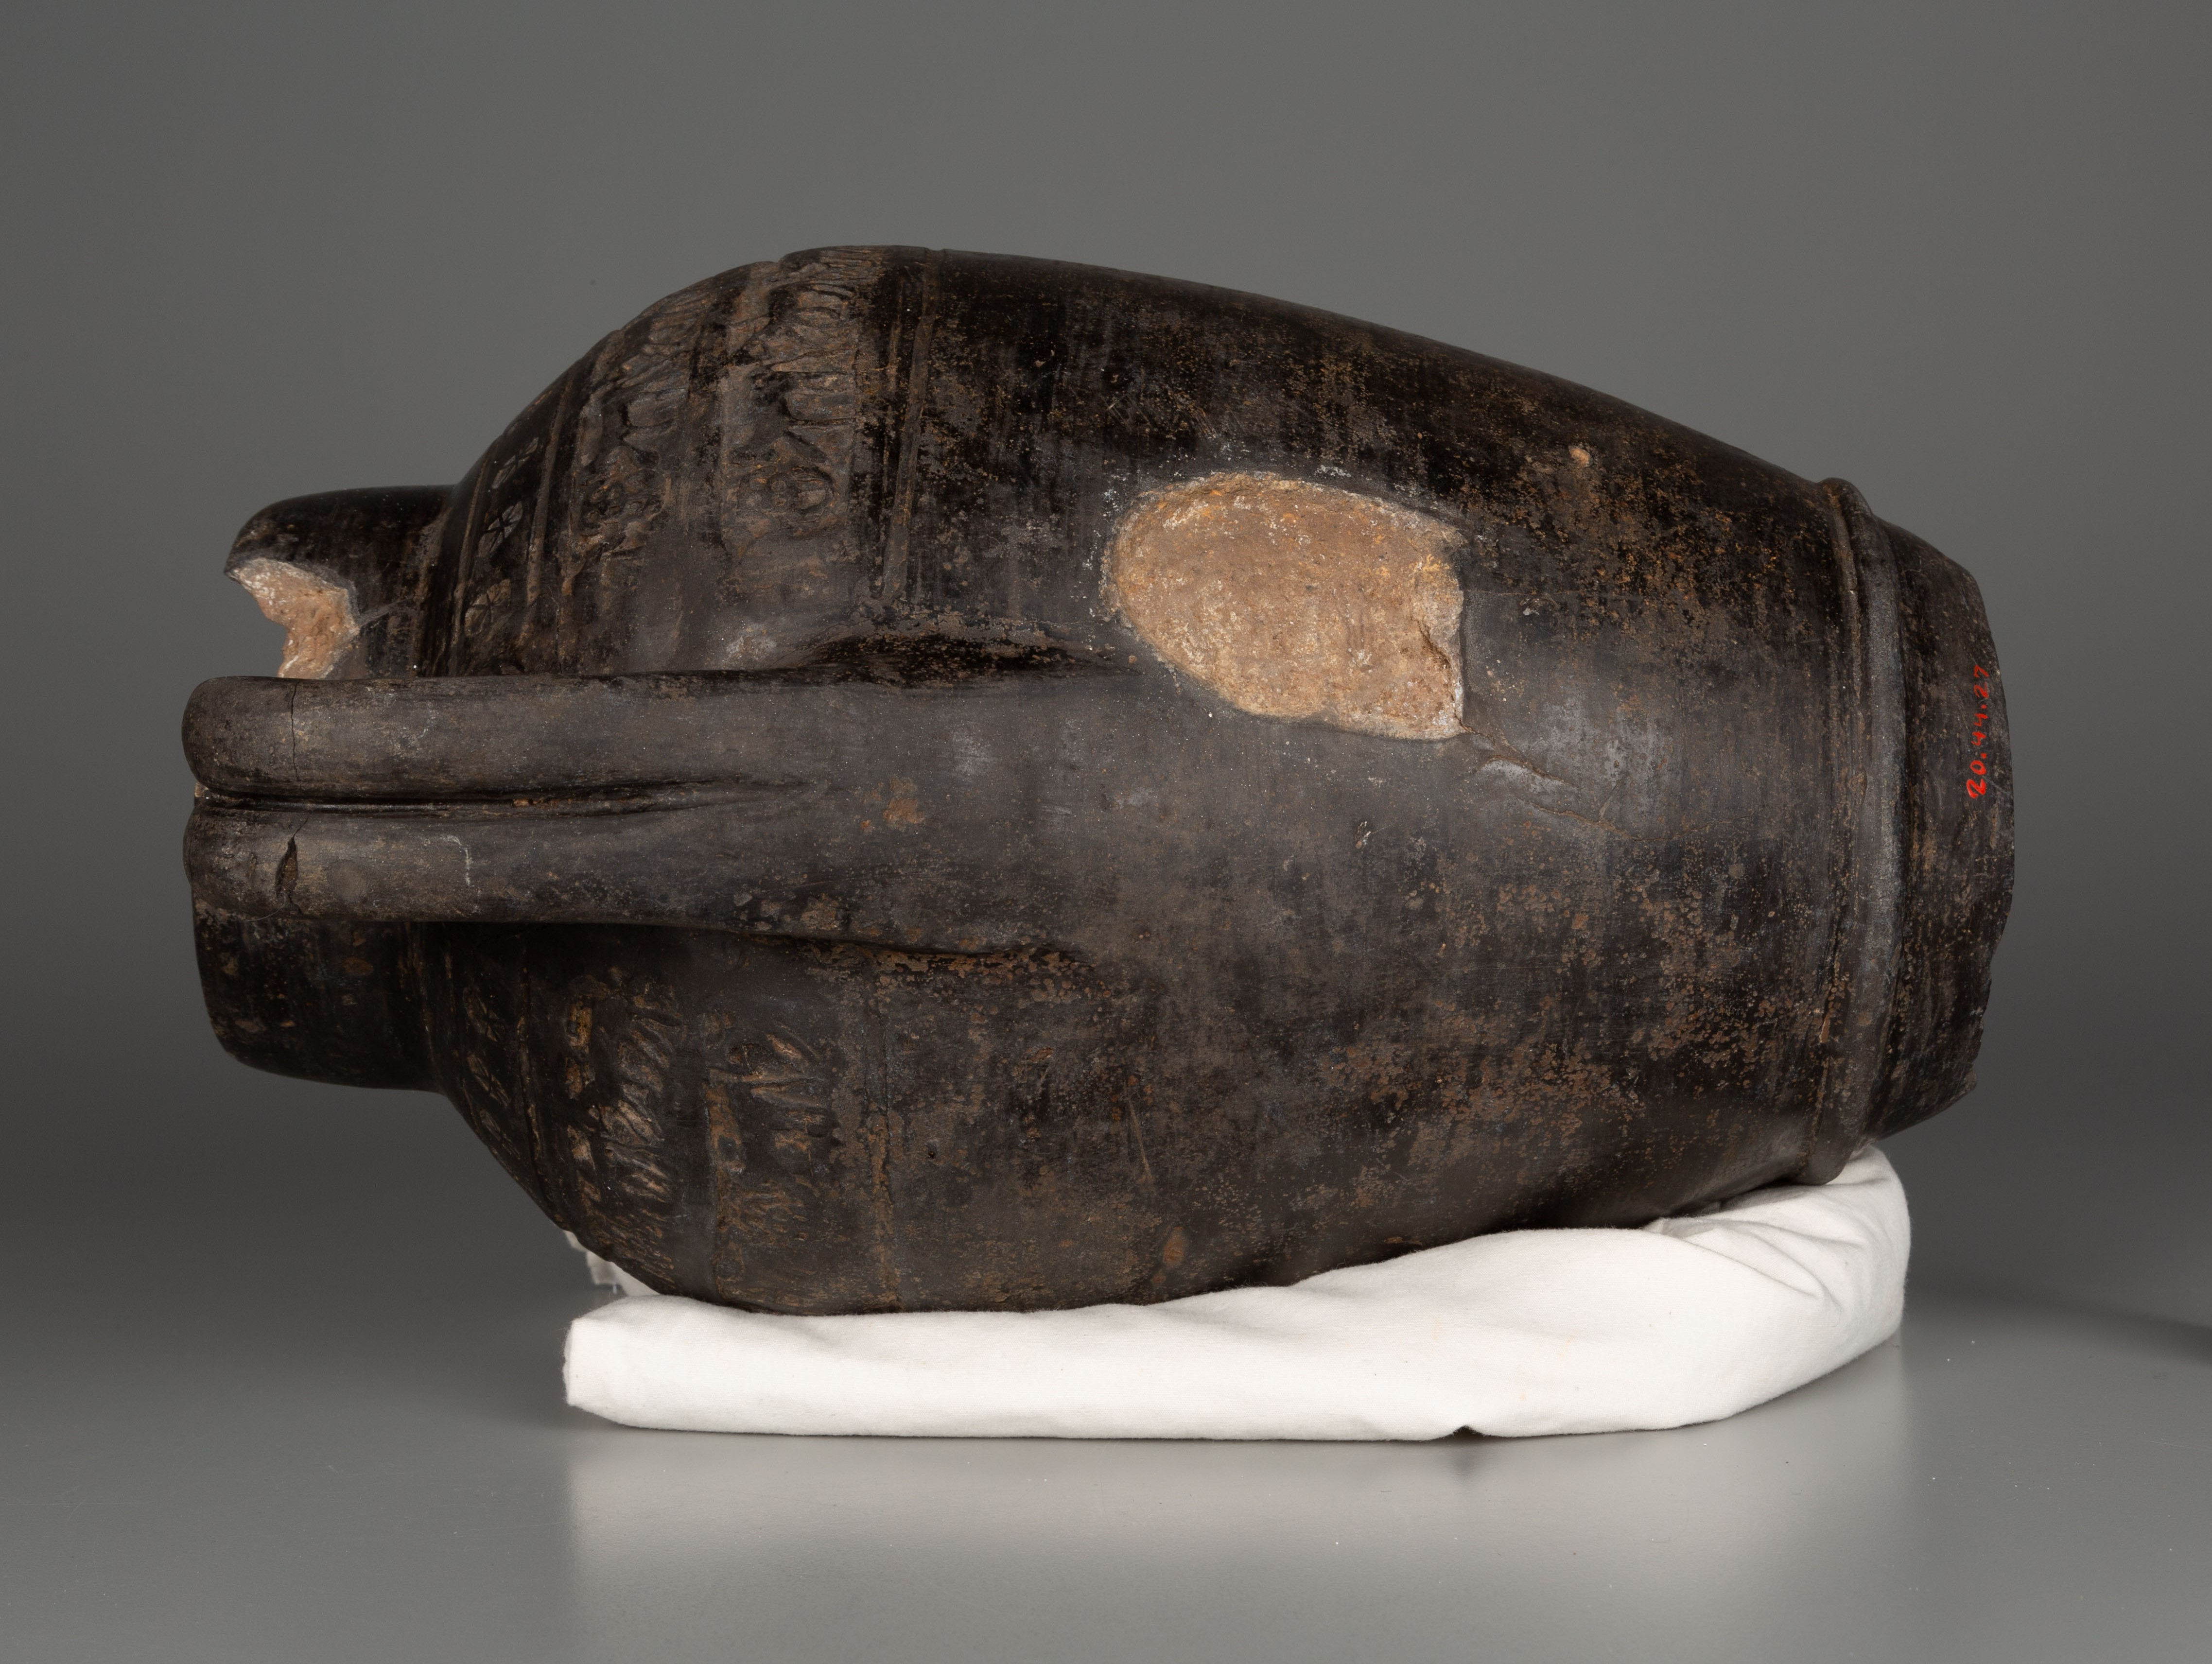 This photograph shows a dark brown-black vessel on its side, with one handle facing the viewer. It rests on a cream-colored cloth. A recessed patch on the body of the vessel is a lighter brown color.